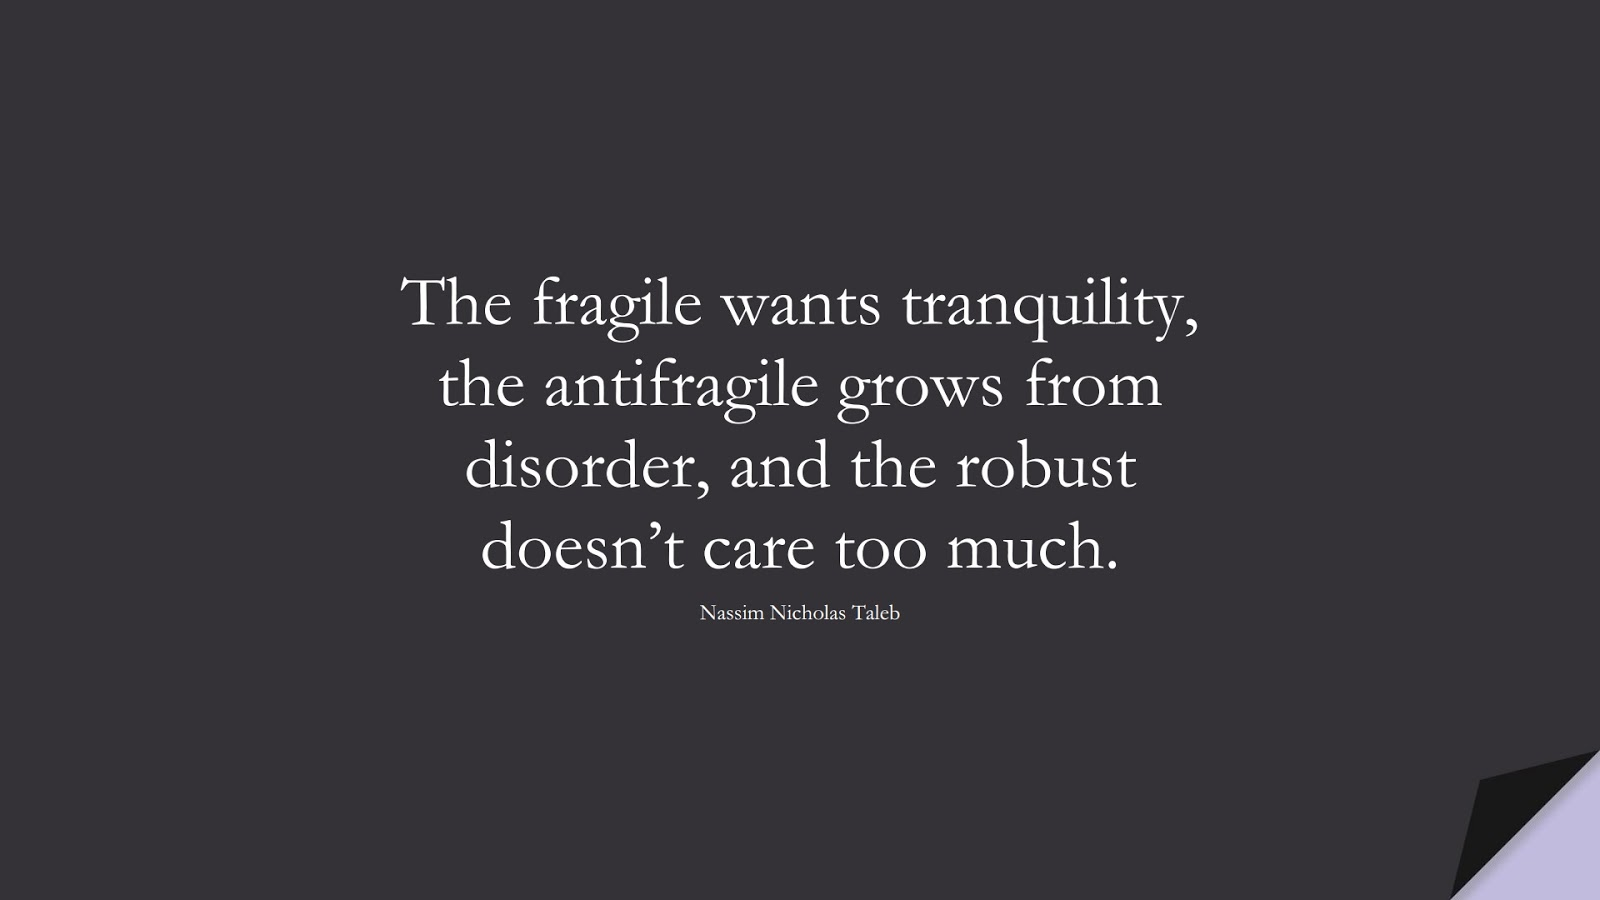 The fragile wants tranquility, the antifragile grows from disorder, and the robust doesn't care too much. (Nassim Nicholas Taleb);  #StoicQuotes